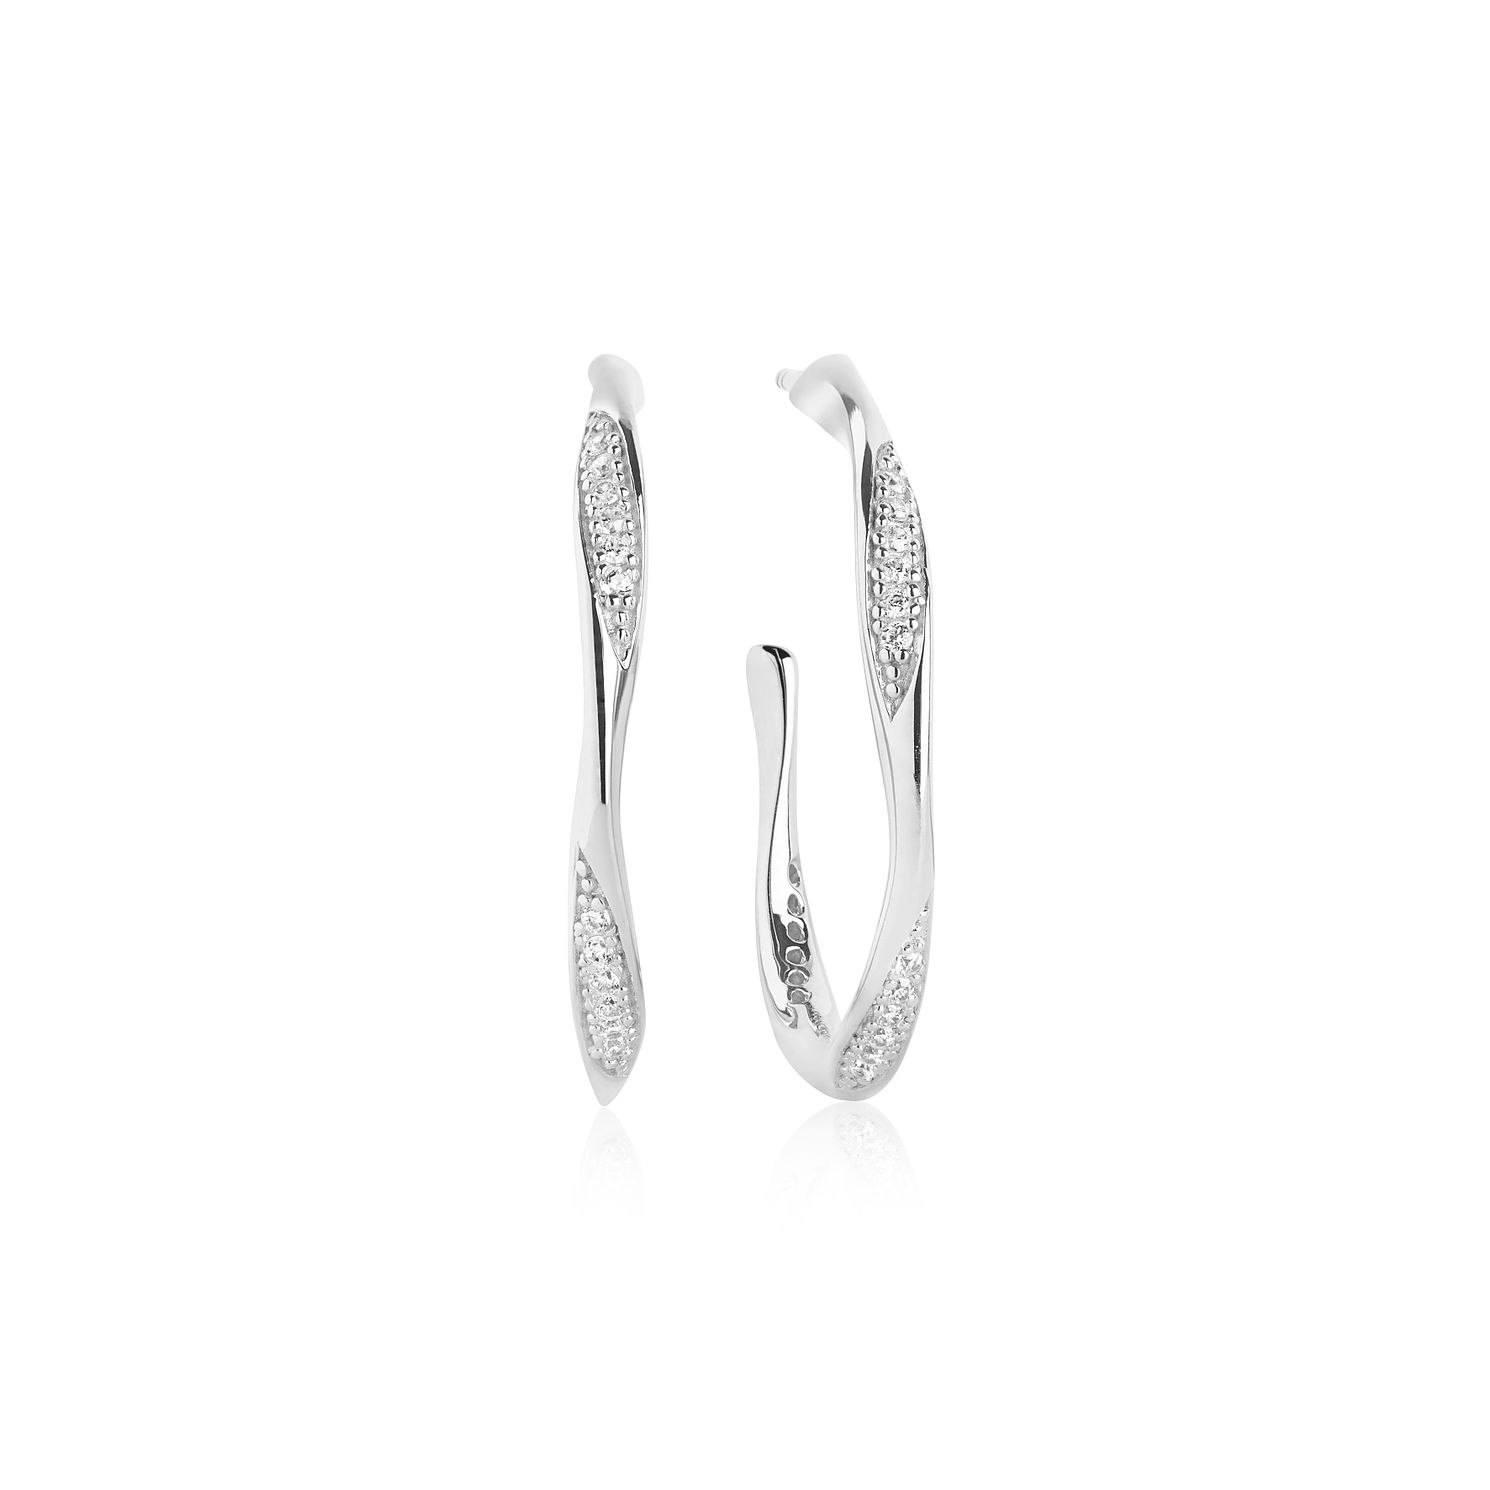 Sif Jakobs Cetara Silver Zirconia Set 24mm Hoop Earrings - Product number 4423526